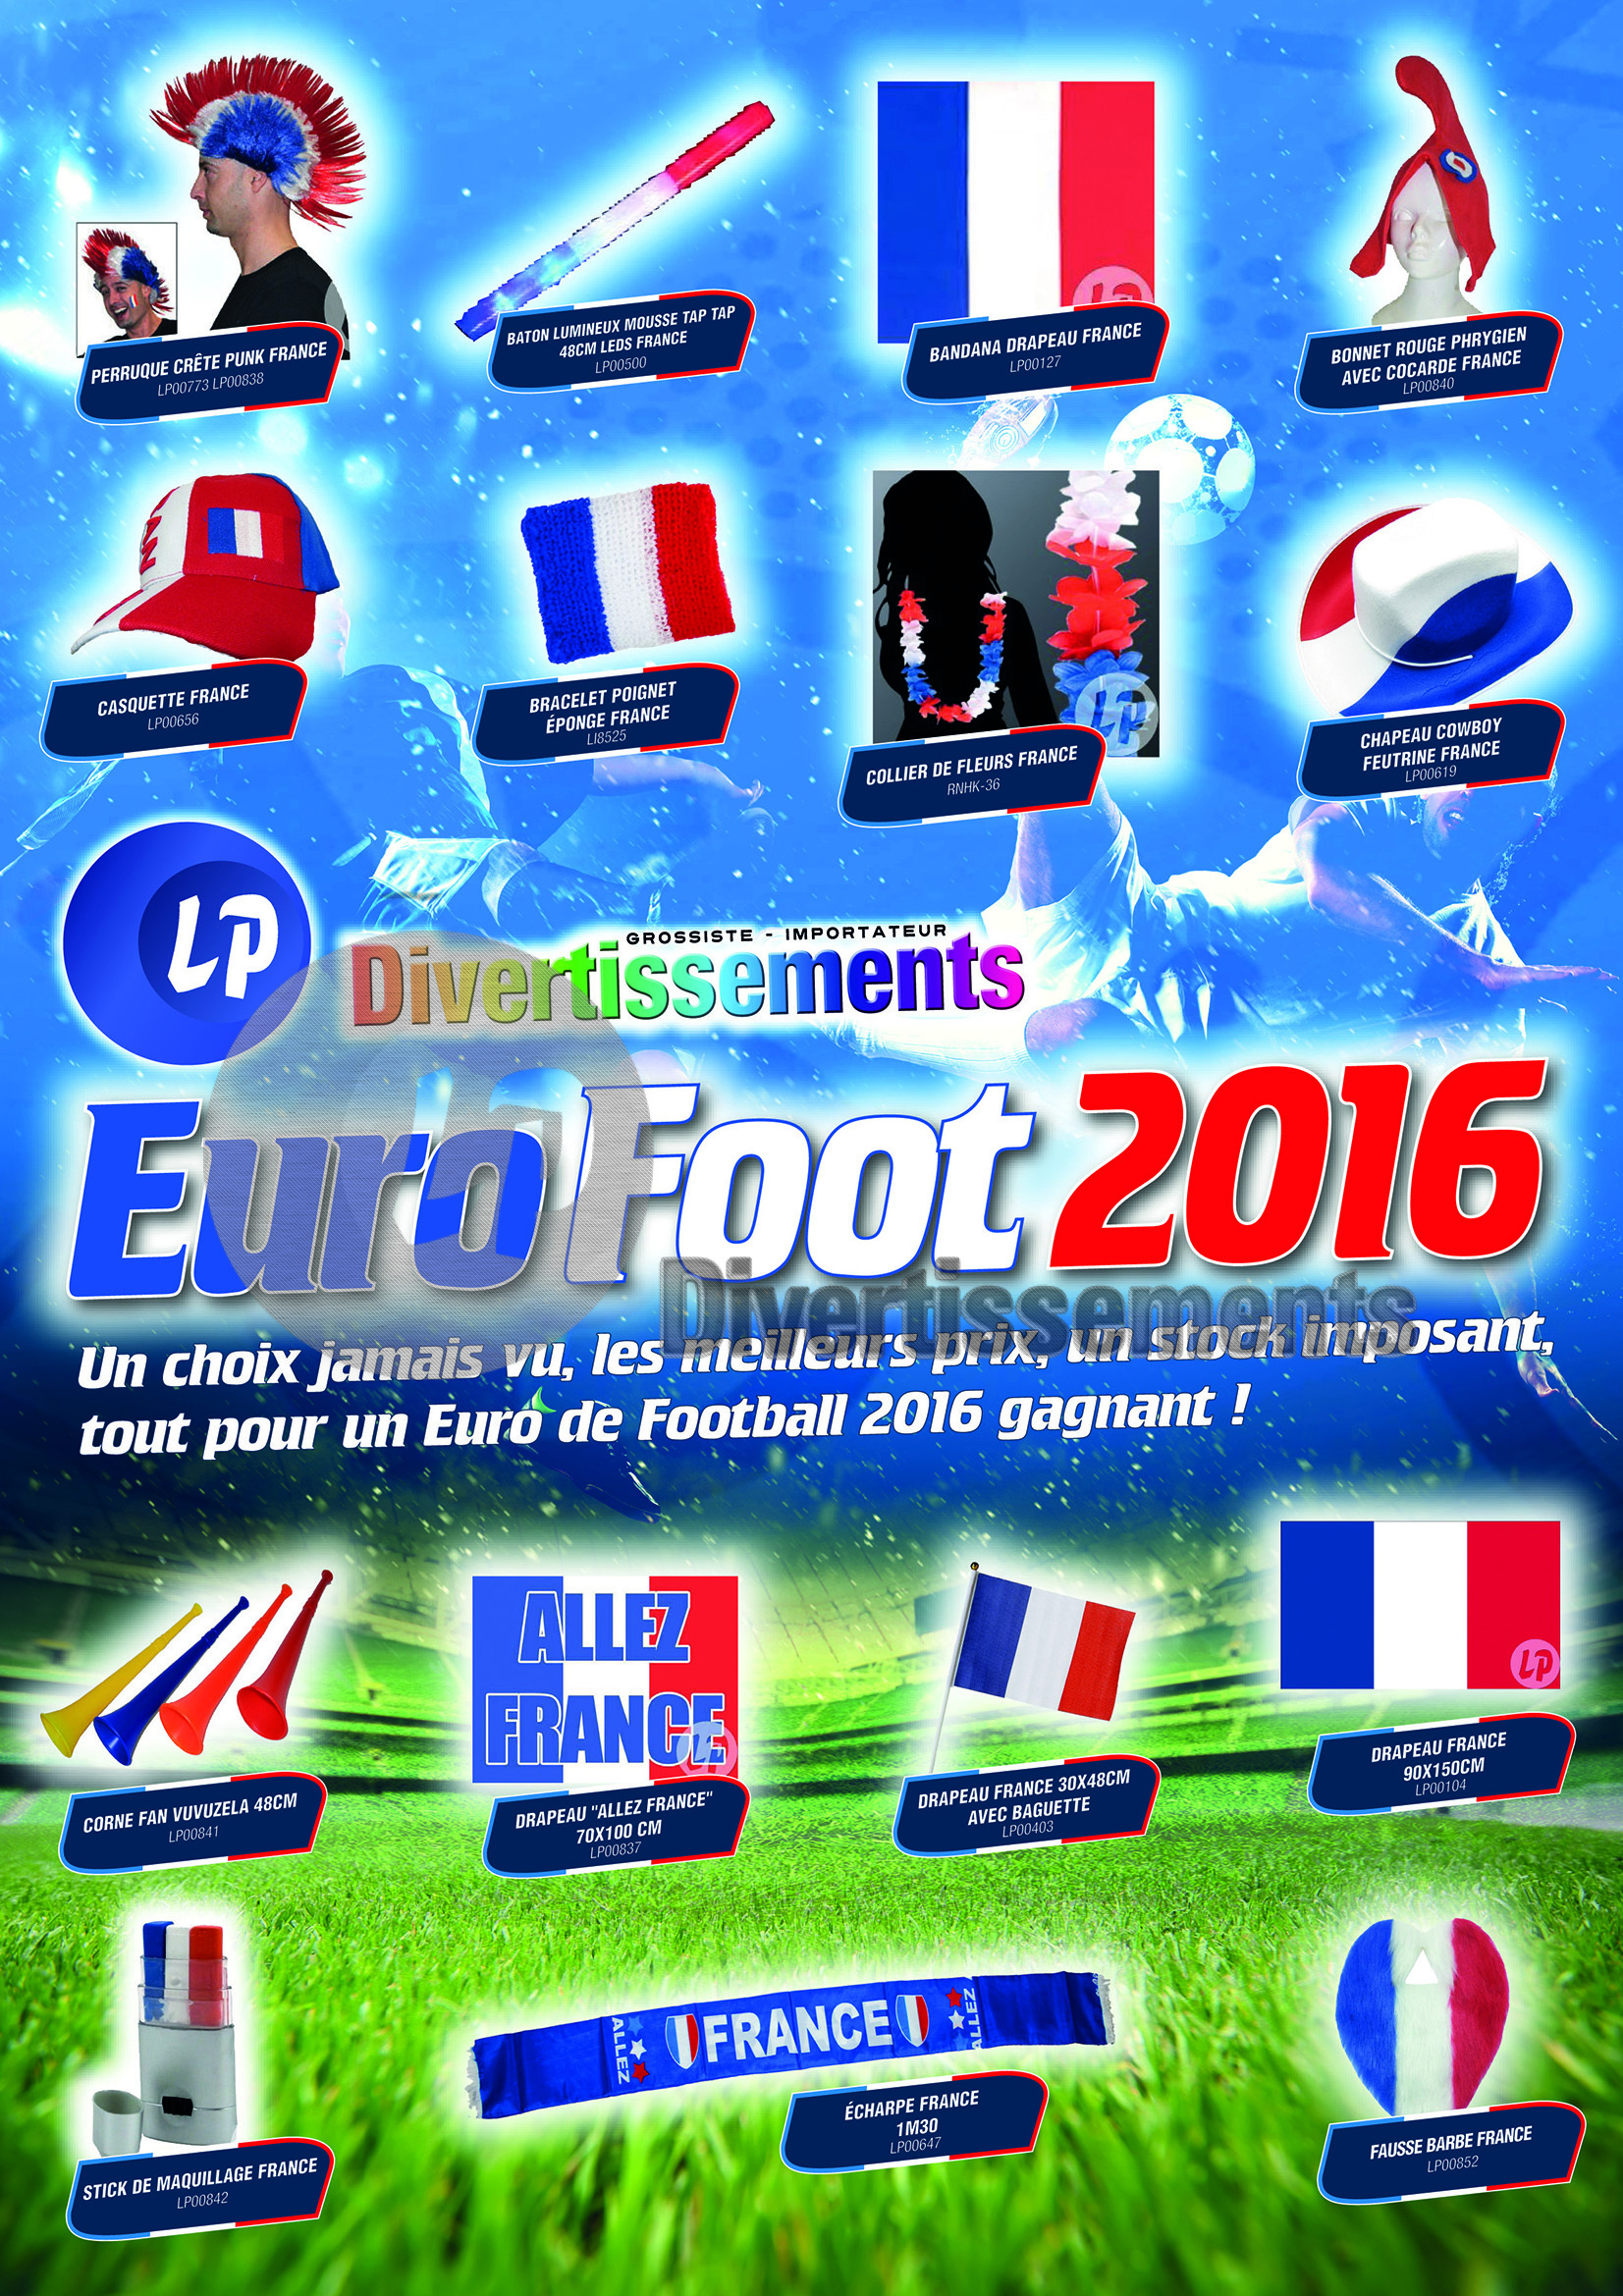 accessoires supporter france football foot euro 2016 jeux olympique jo basket rugby handball volleyball articles de fte pour supporter france bleu